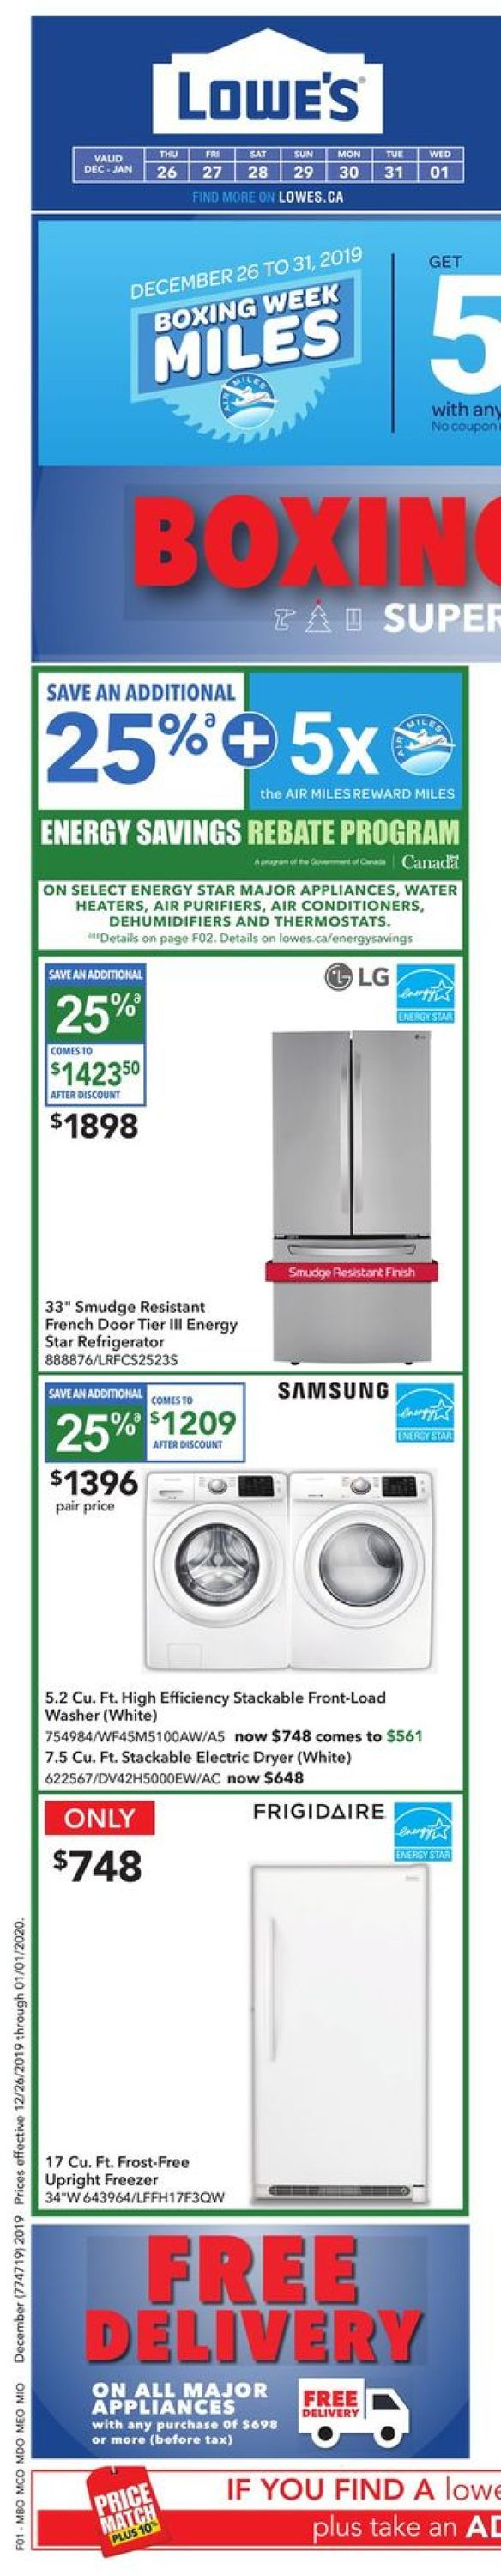 Lowes - Boxing Week Sale